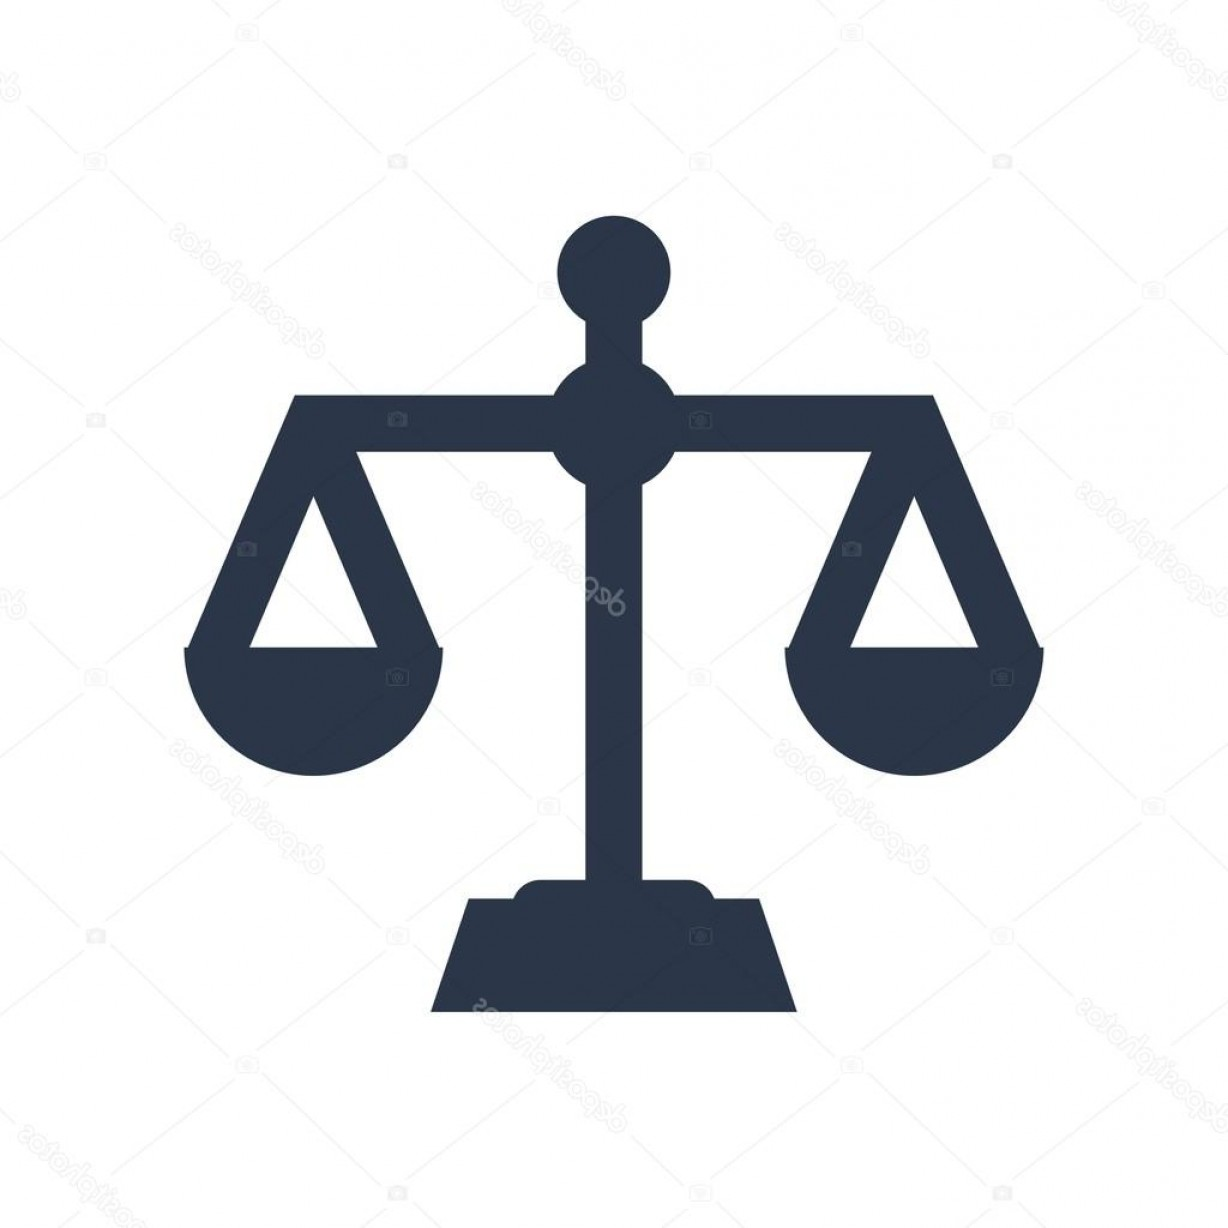 Balance Symbol Vector: Stock Illustration Law Firm Logo Icon With